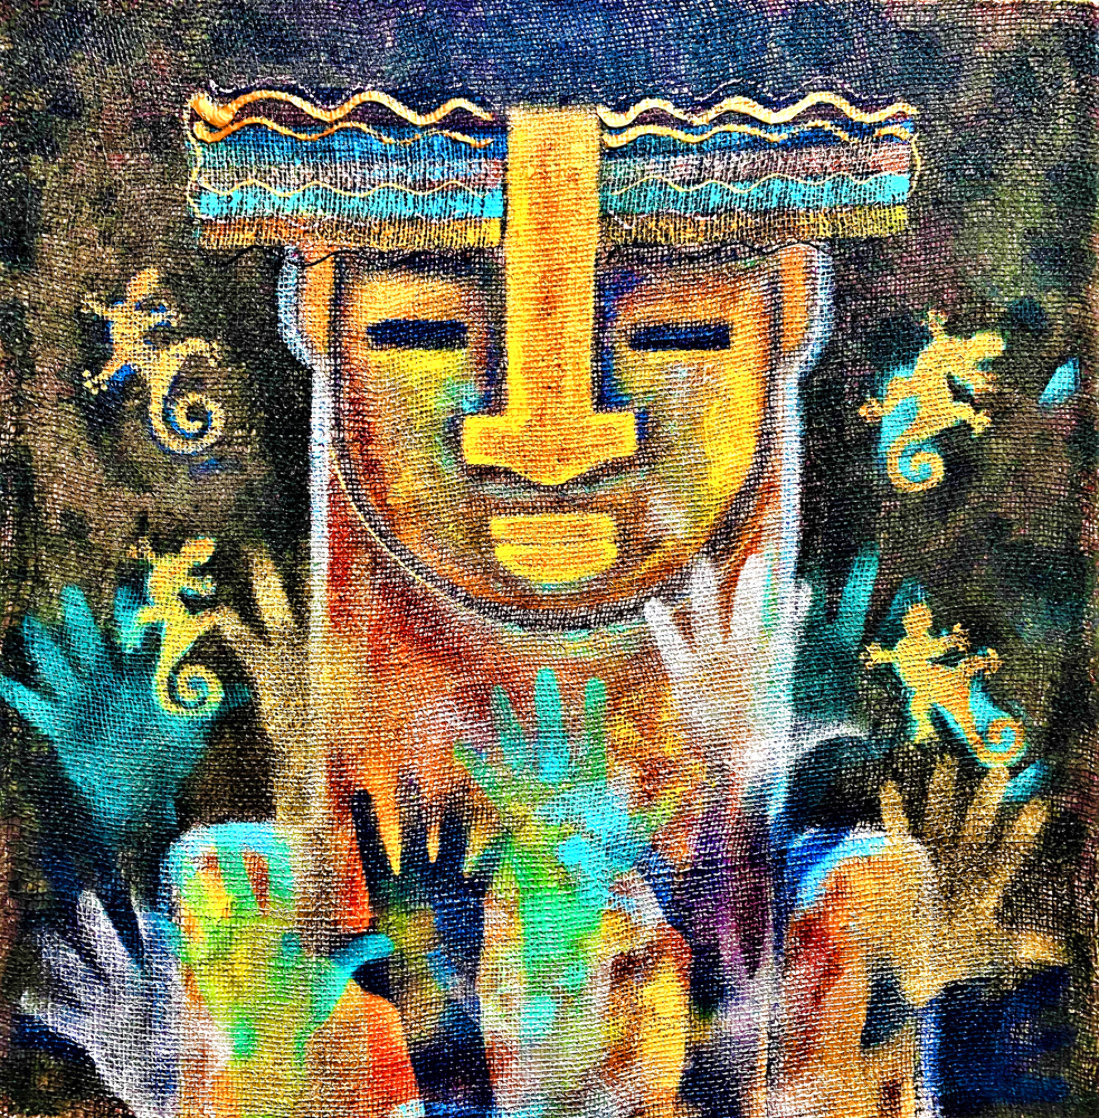 Amazonian 2021 36x36 Original Painting by Gaylord Soli  (Gaylord)